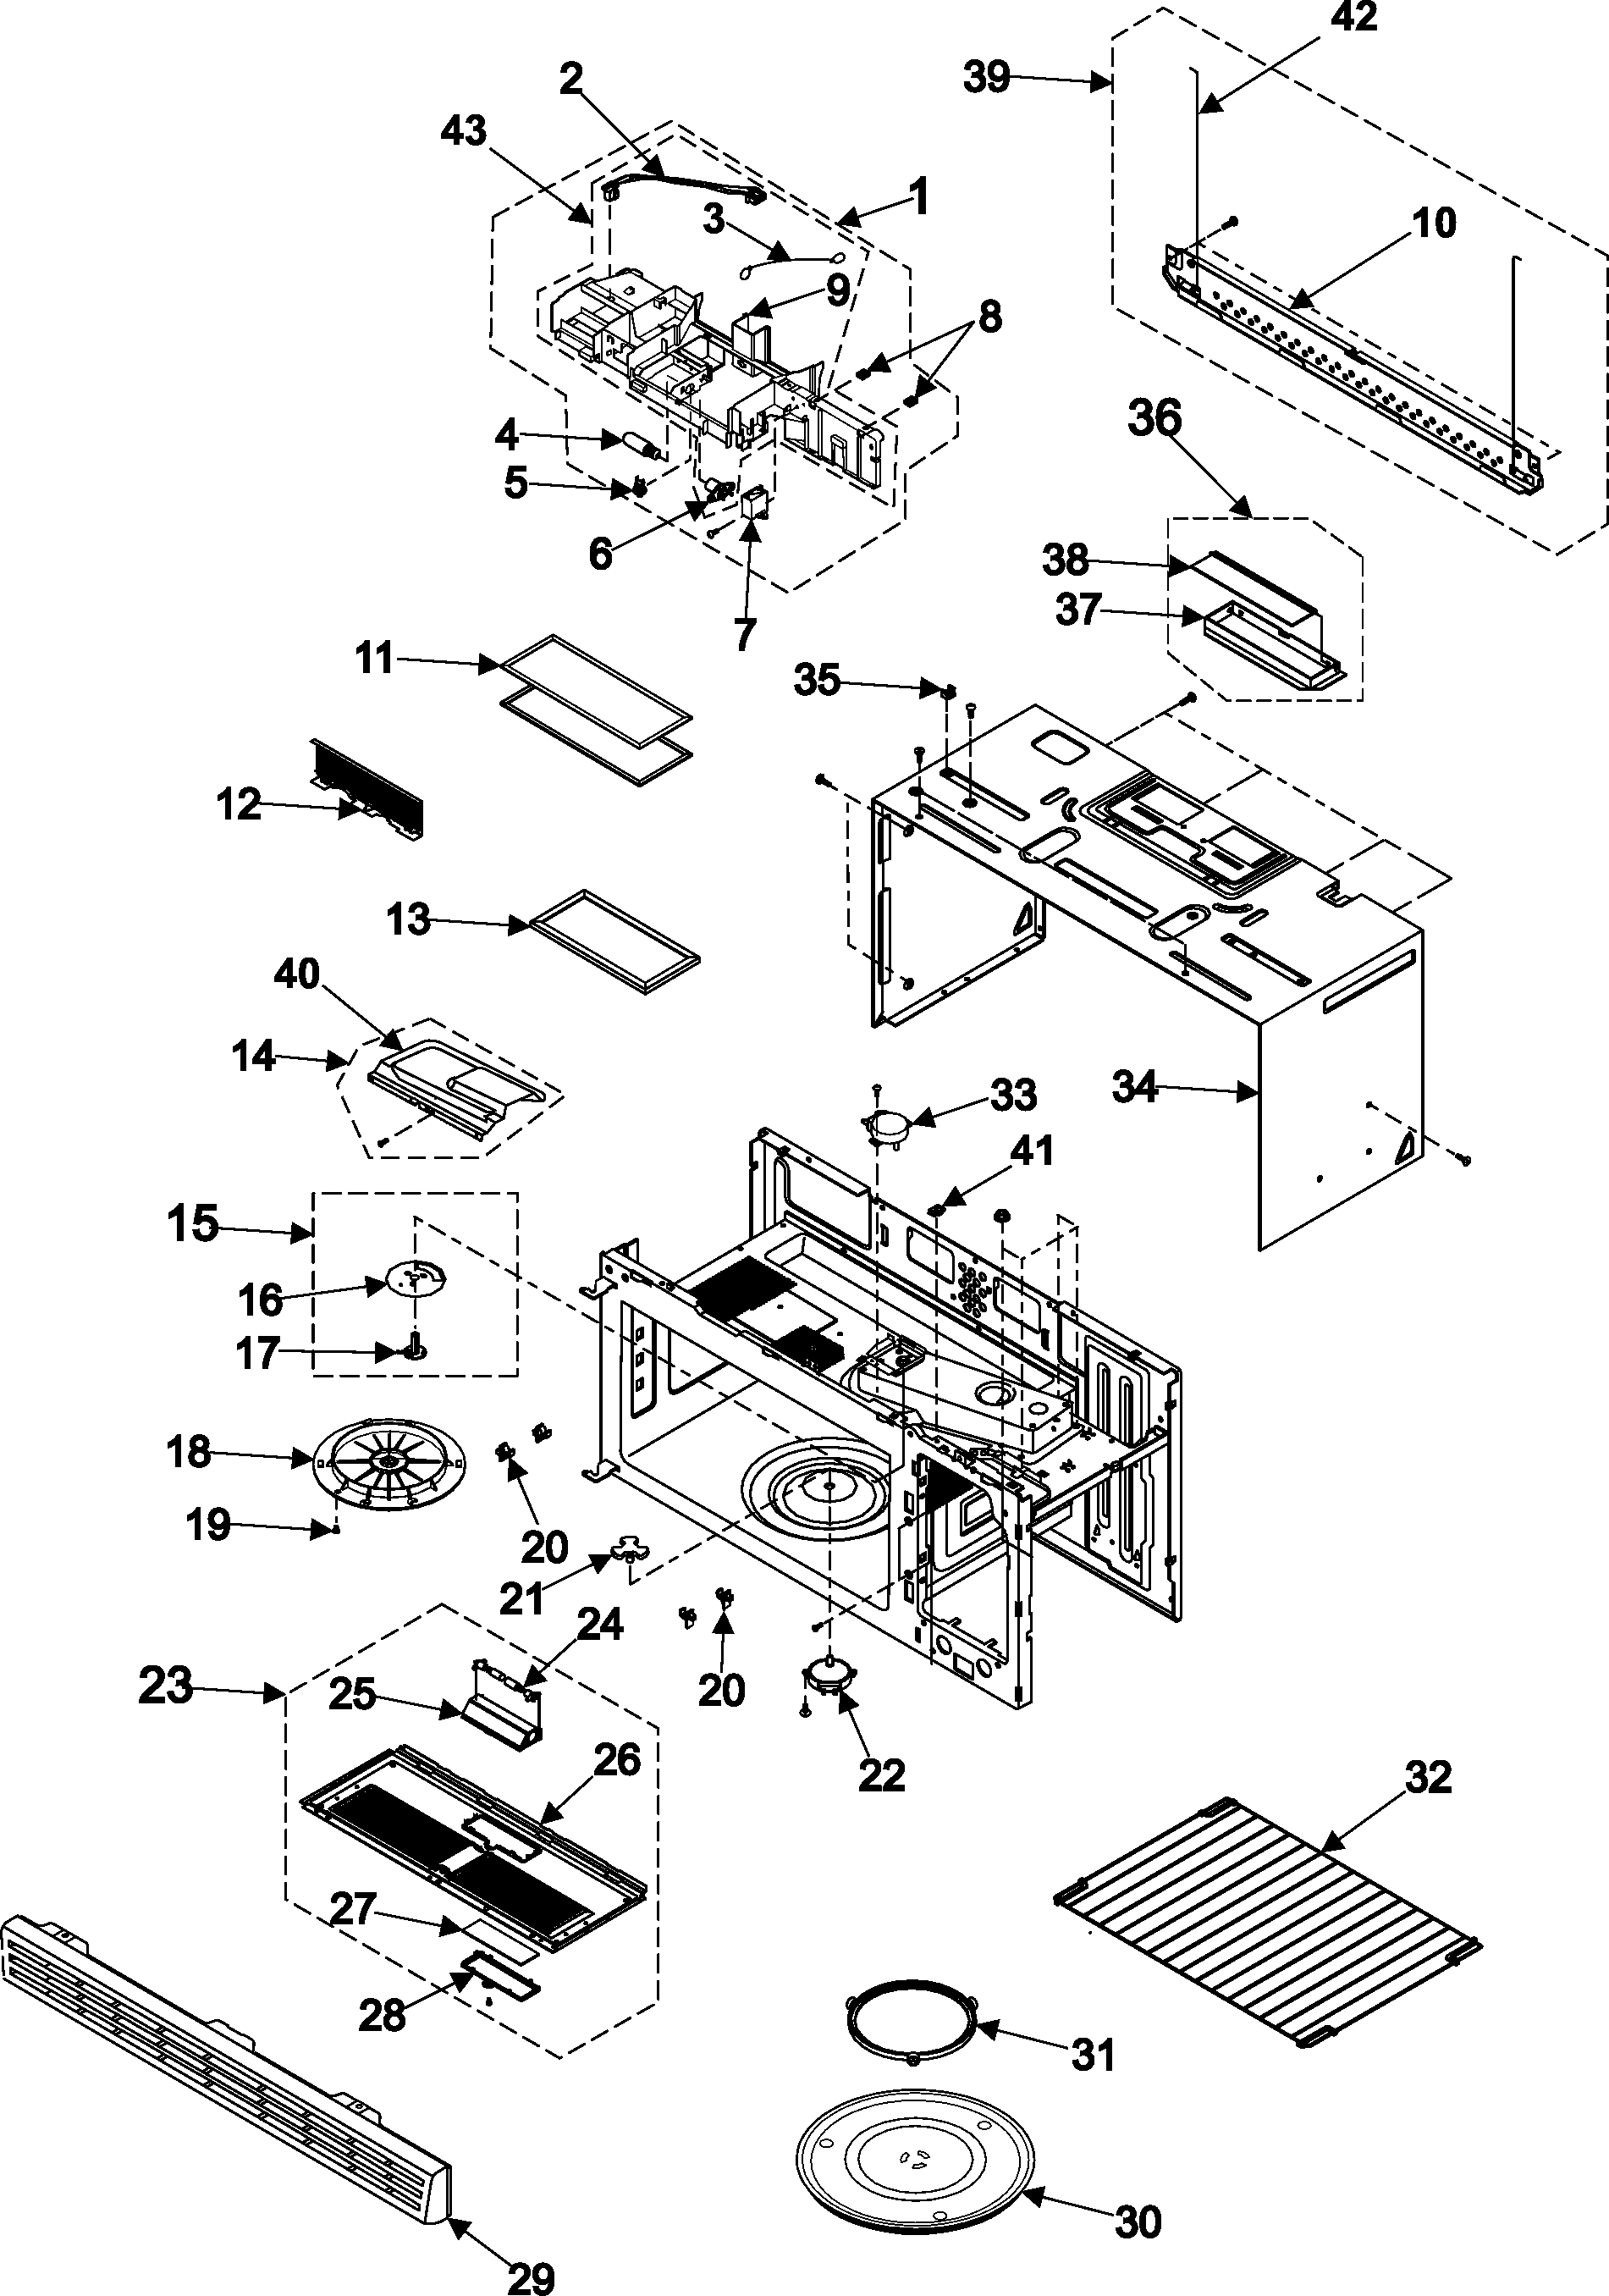 BODY/CAVITY/ELEMENTS Diagram & Parts List for Model